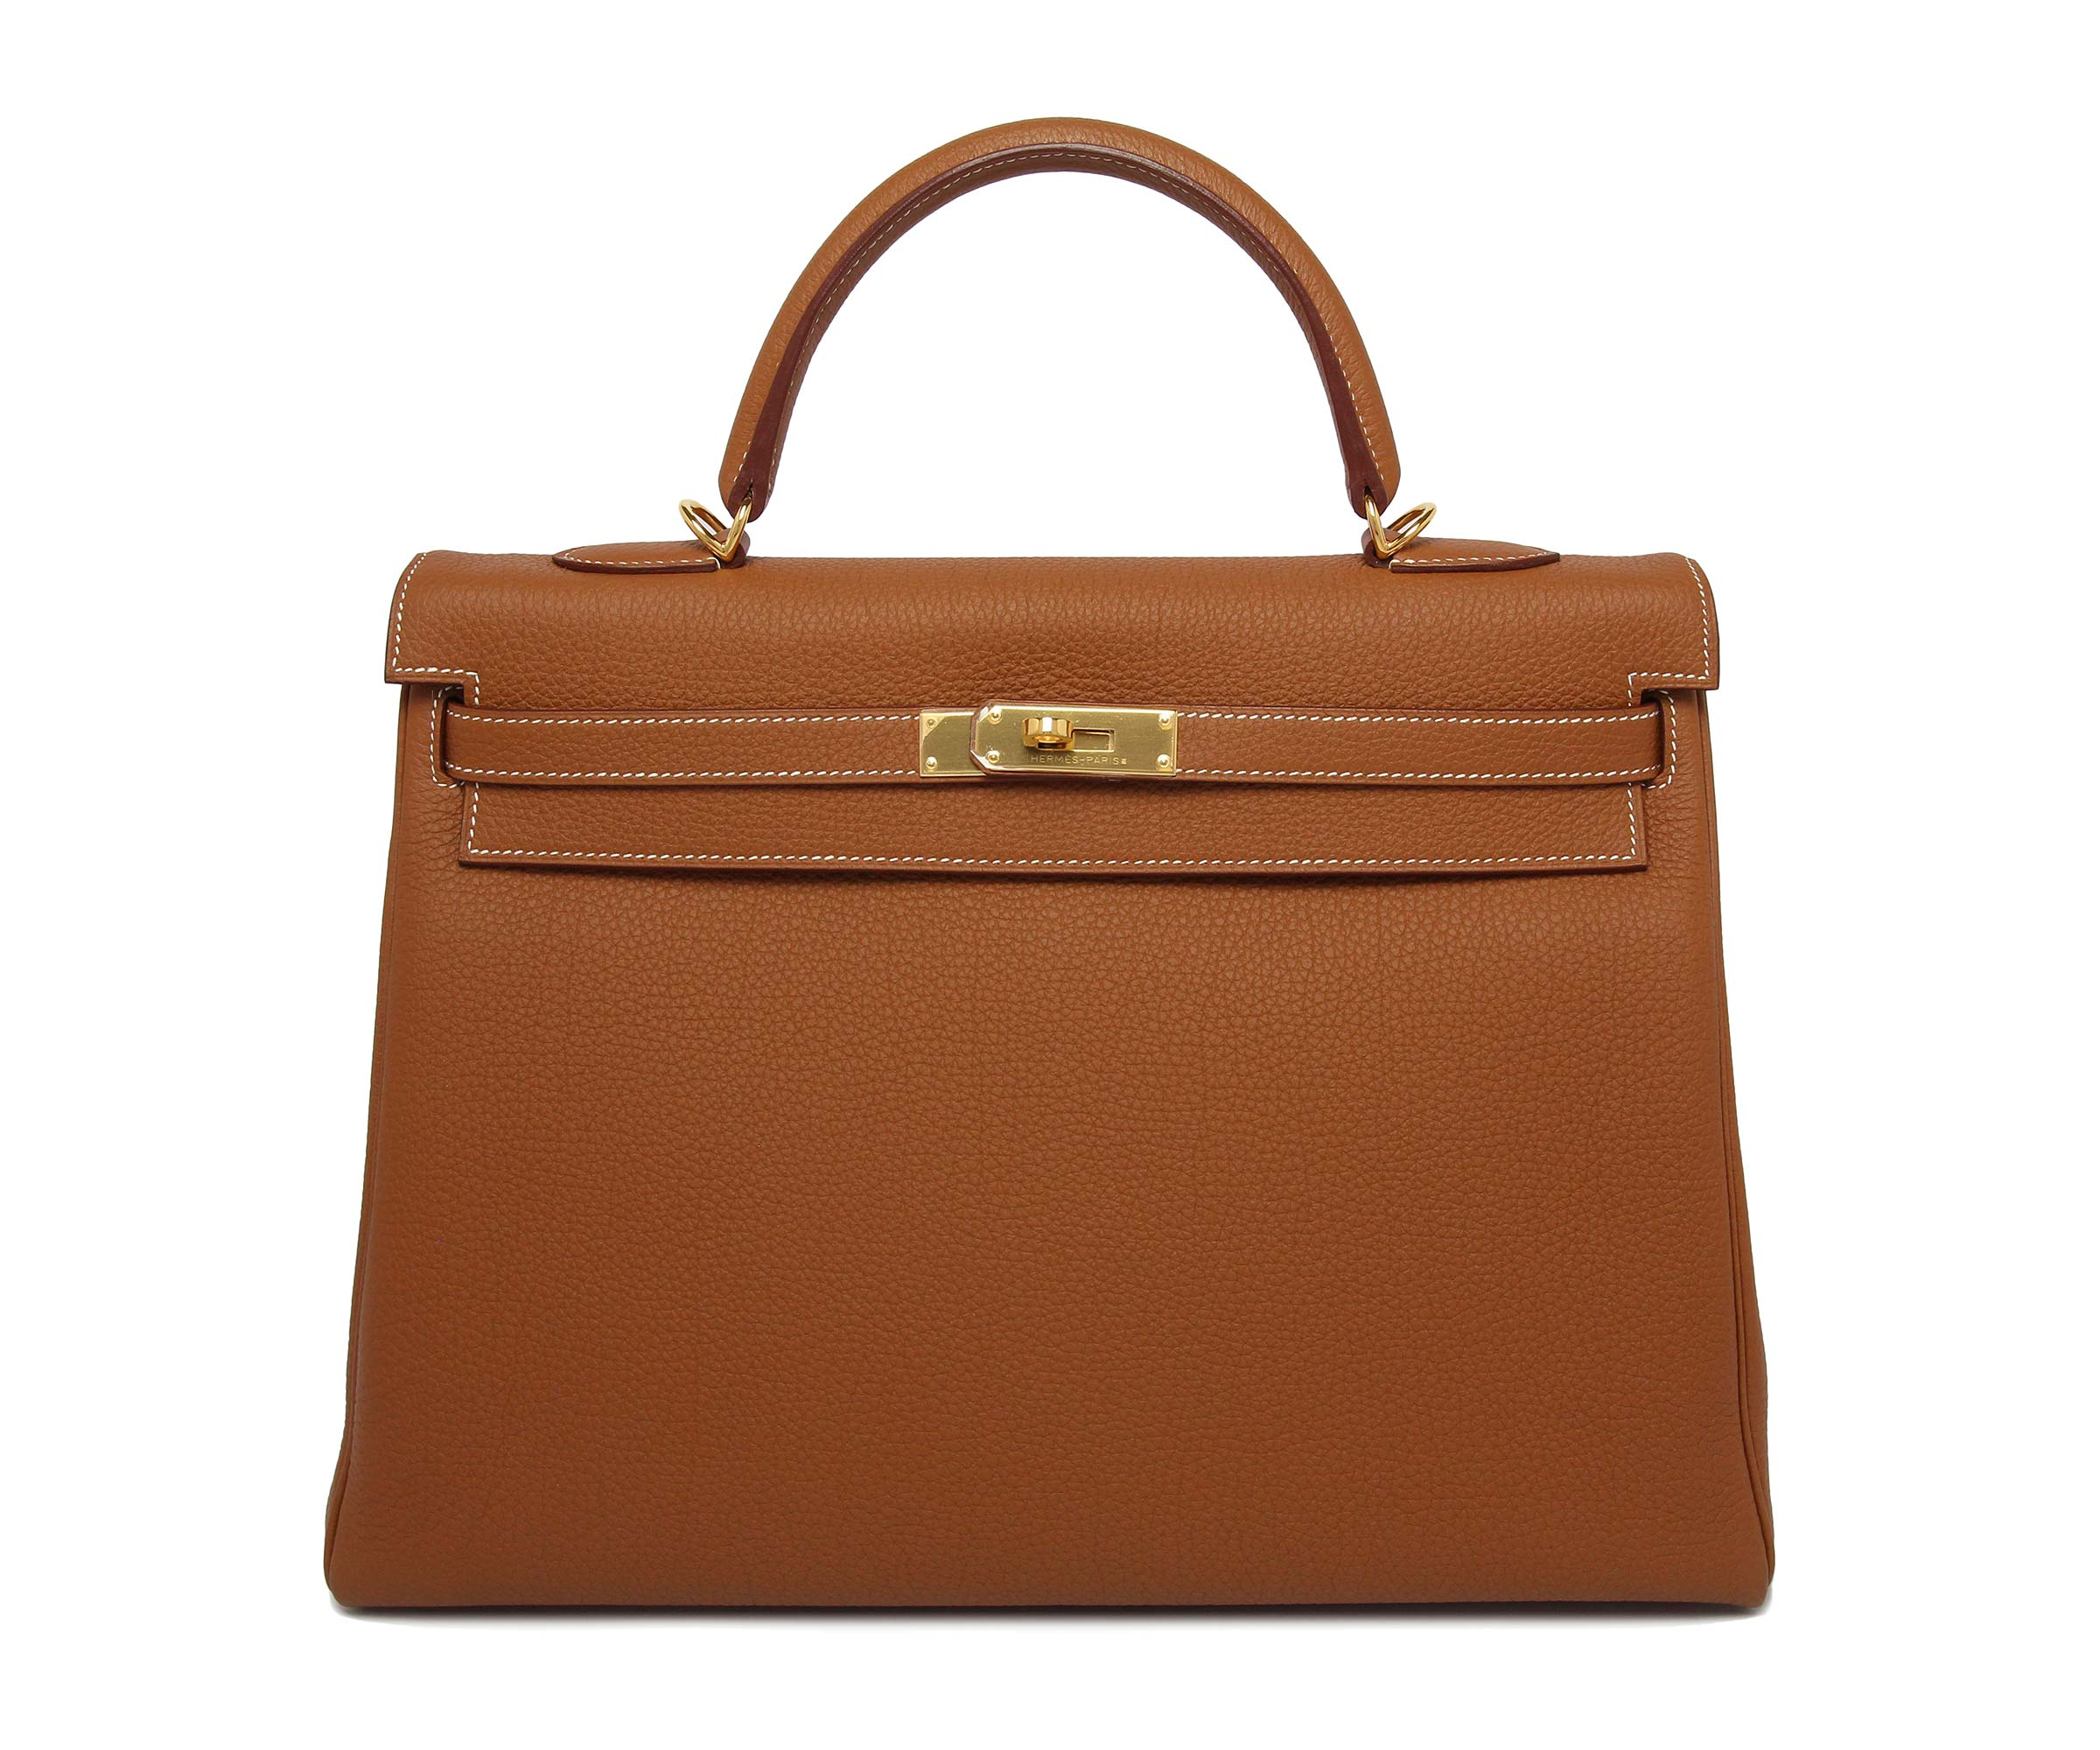 Hermes Kelly Gold Togo with Gold